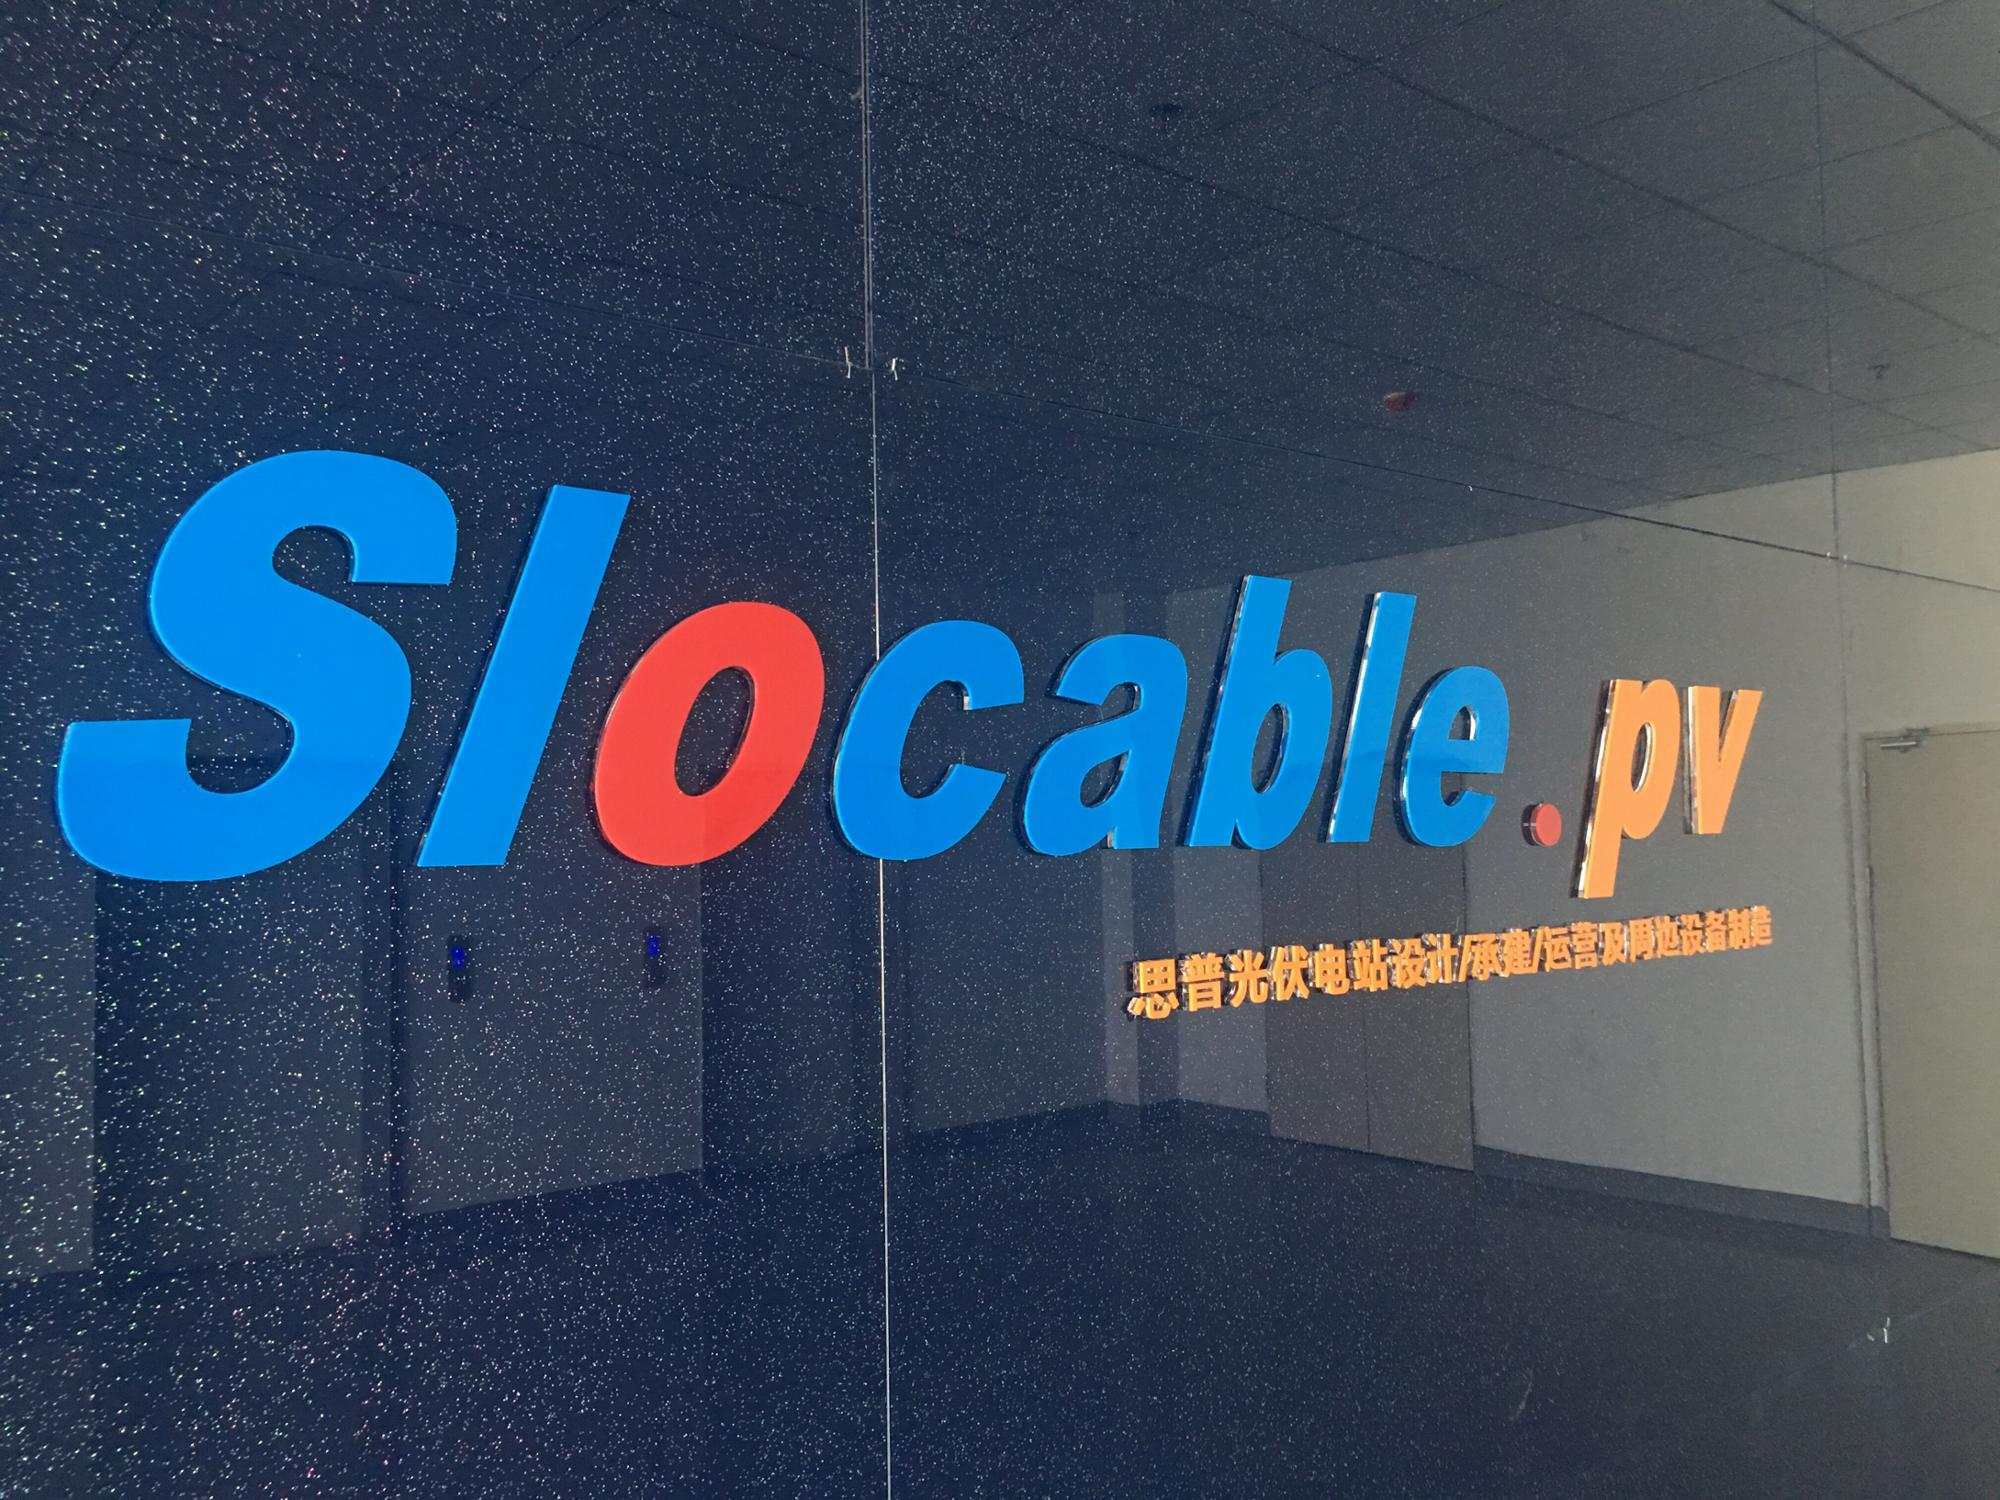 Cheap pv1f solar cable